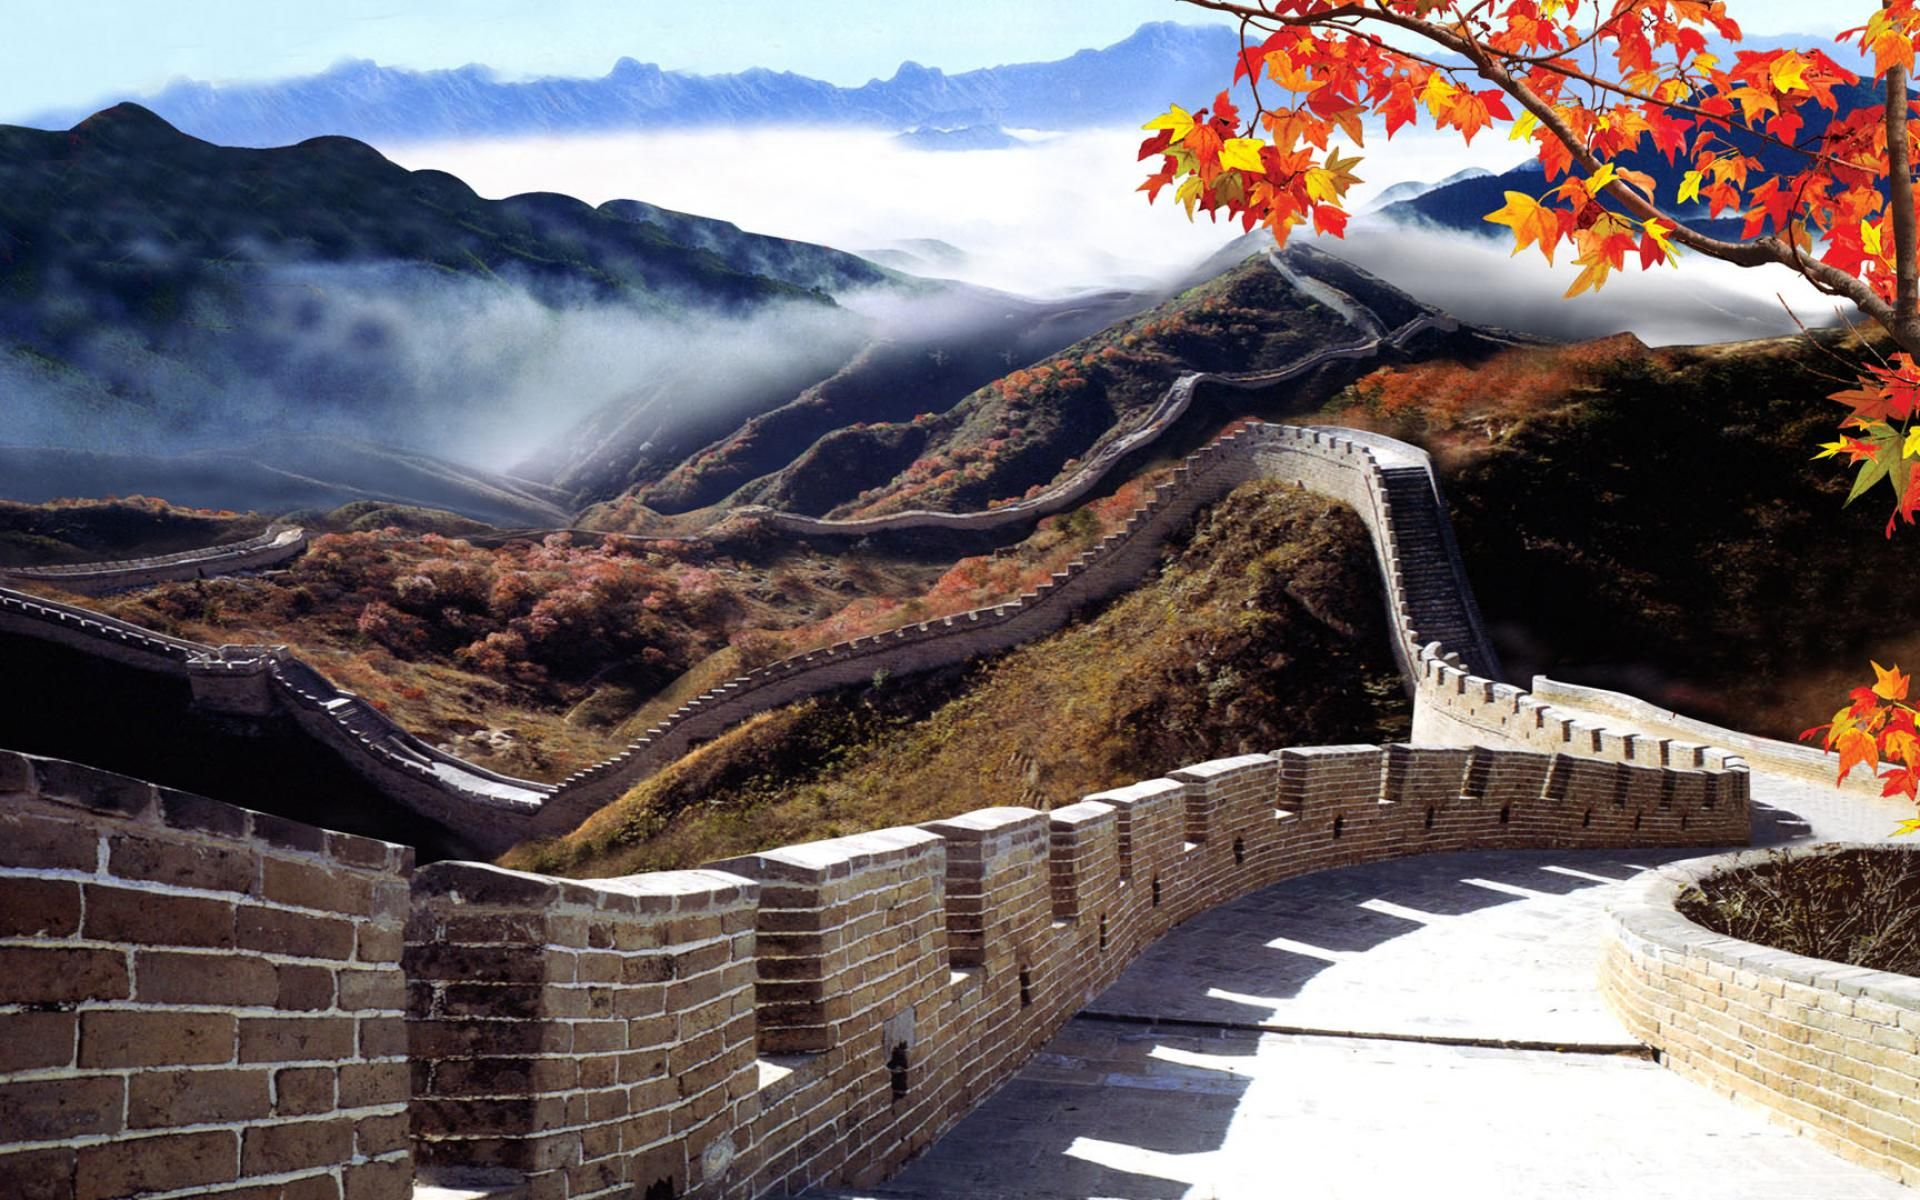 Chinese Scenery Realistic Wallpaper That Looks